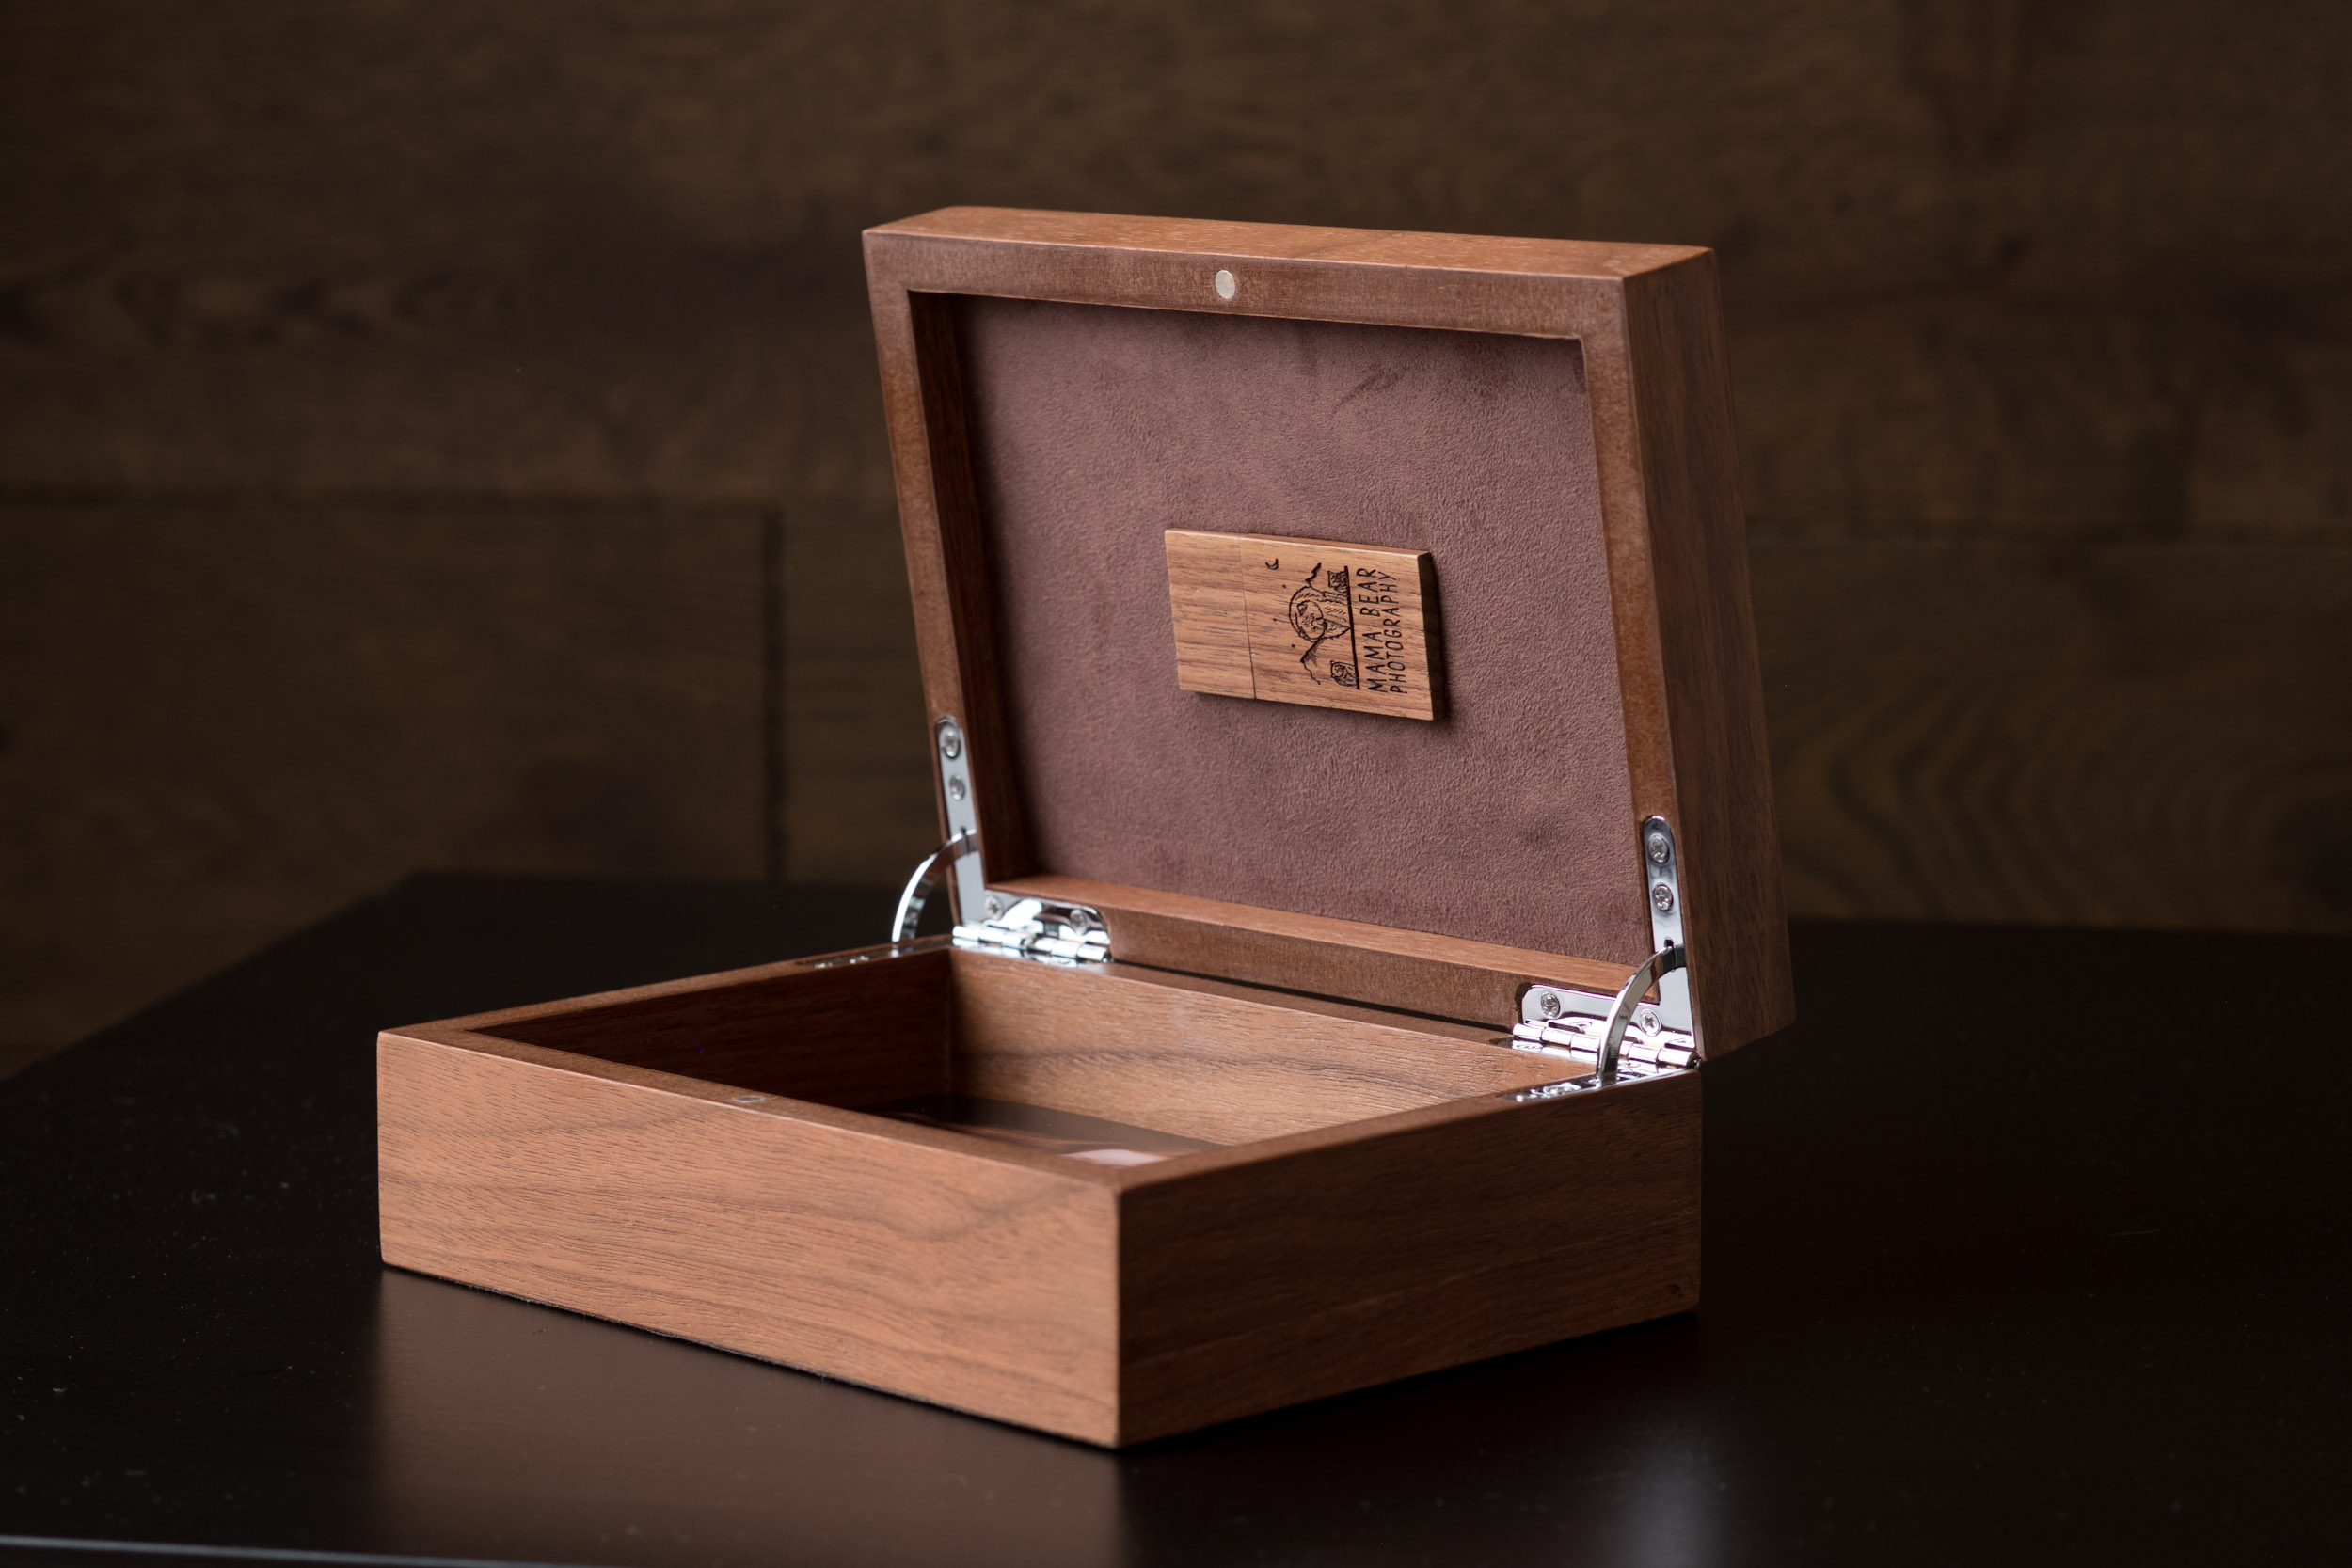 Newborn-Photography-Lincoln-Wooden-Keepsake-Box-For-Prints-005.jpg